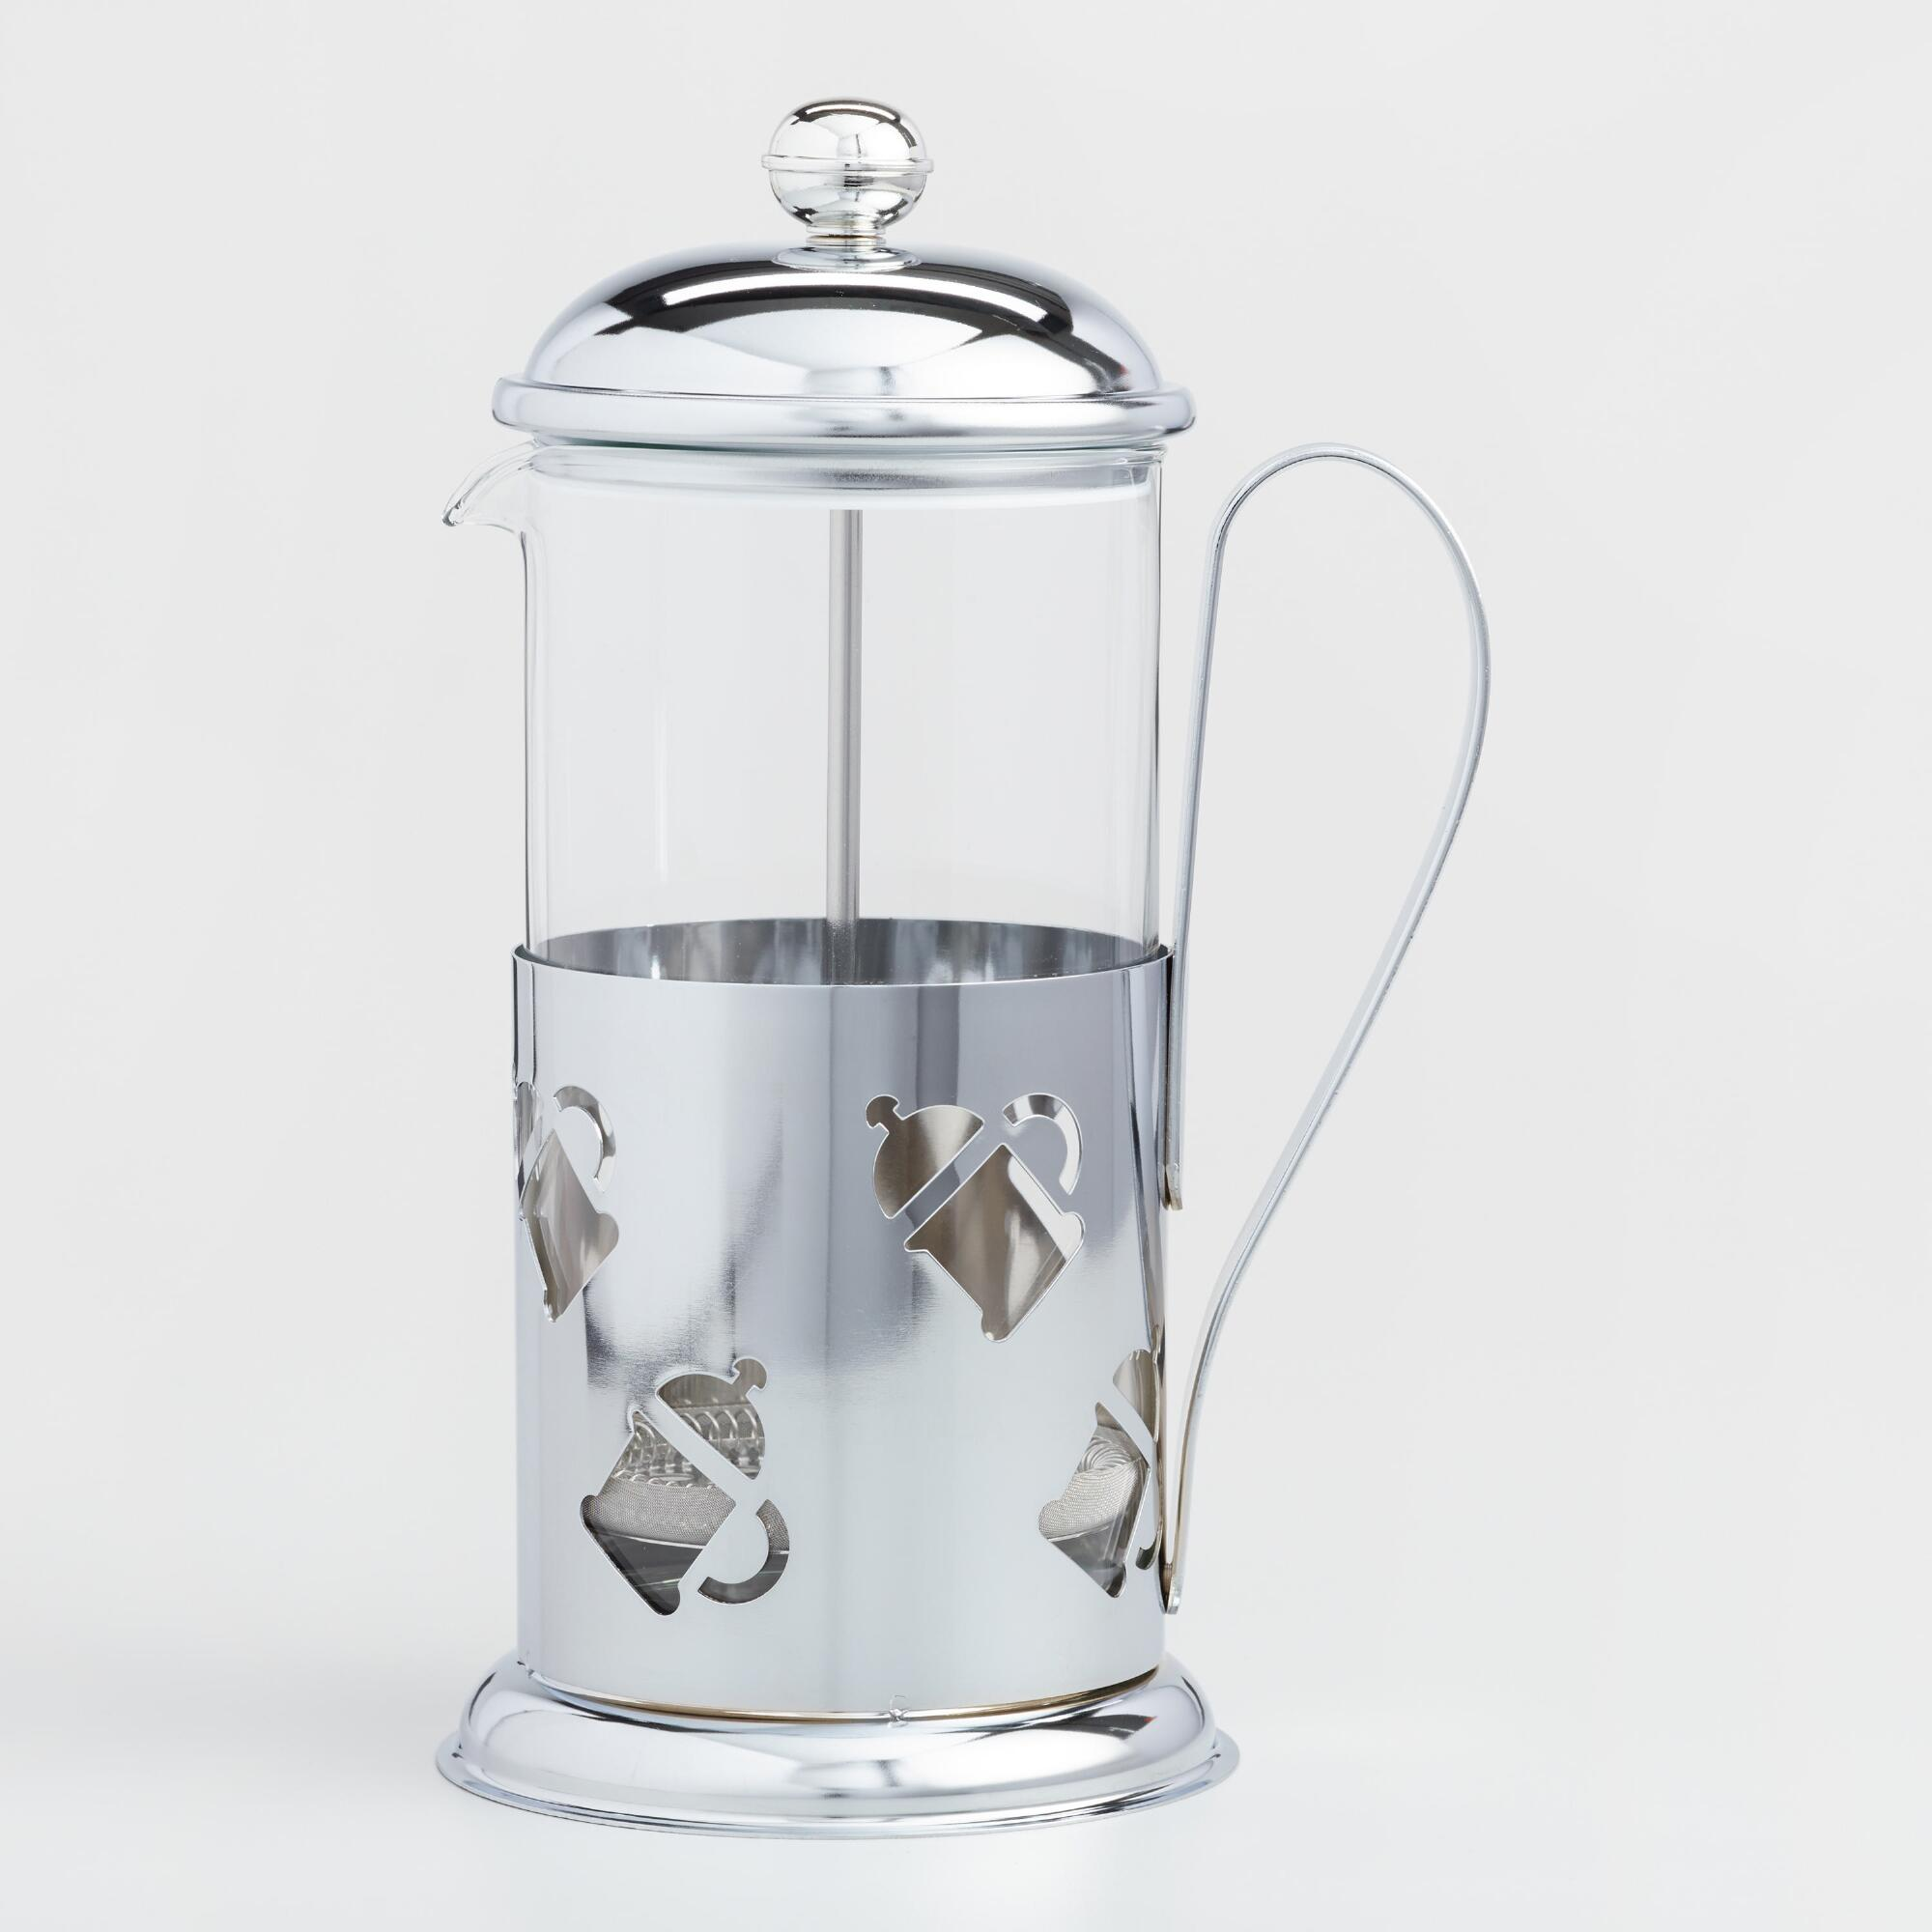 Bed bath beyond french press - Bed Bath Beyond French Press 42